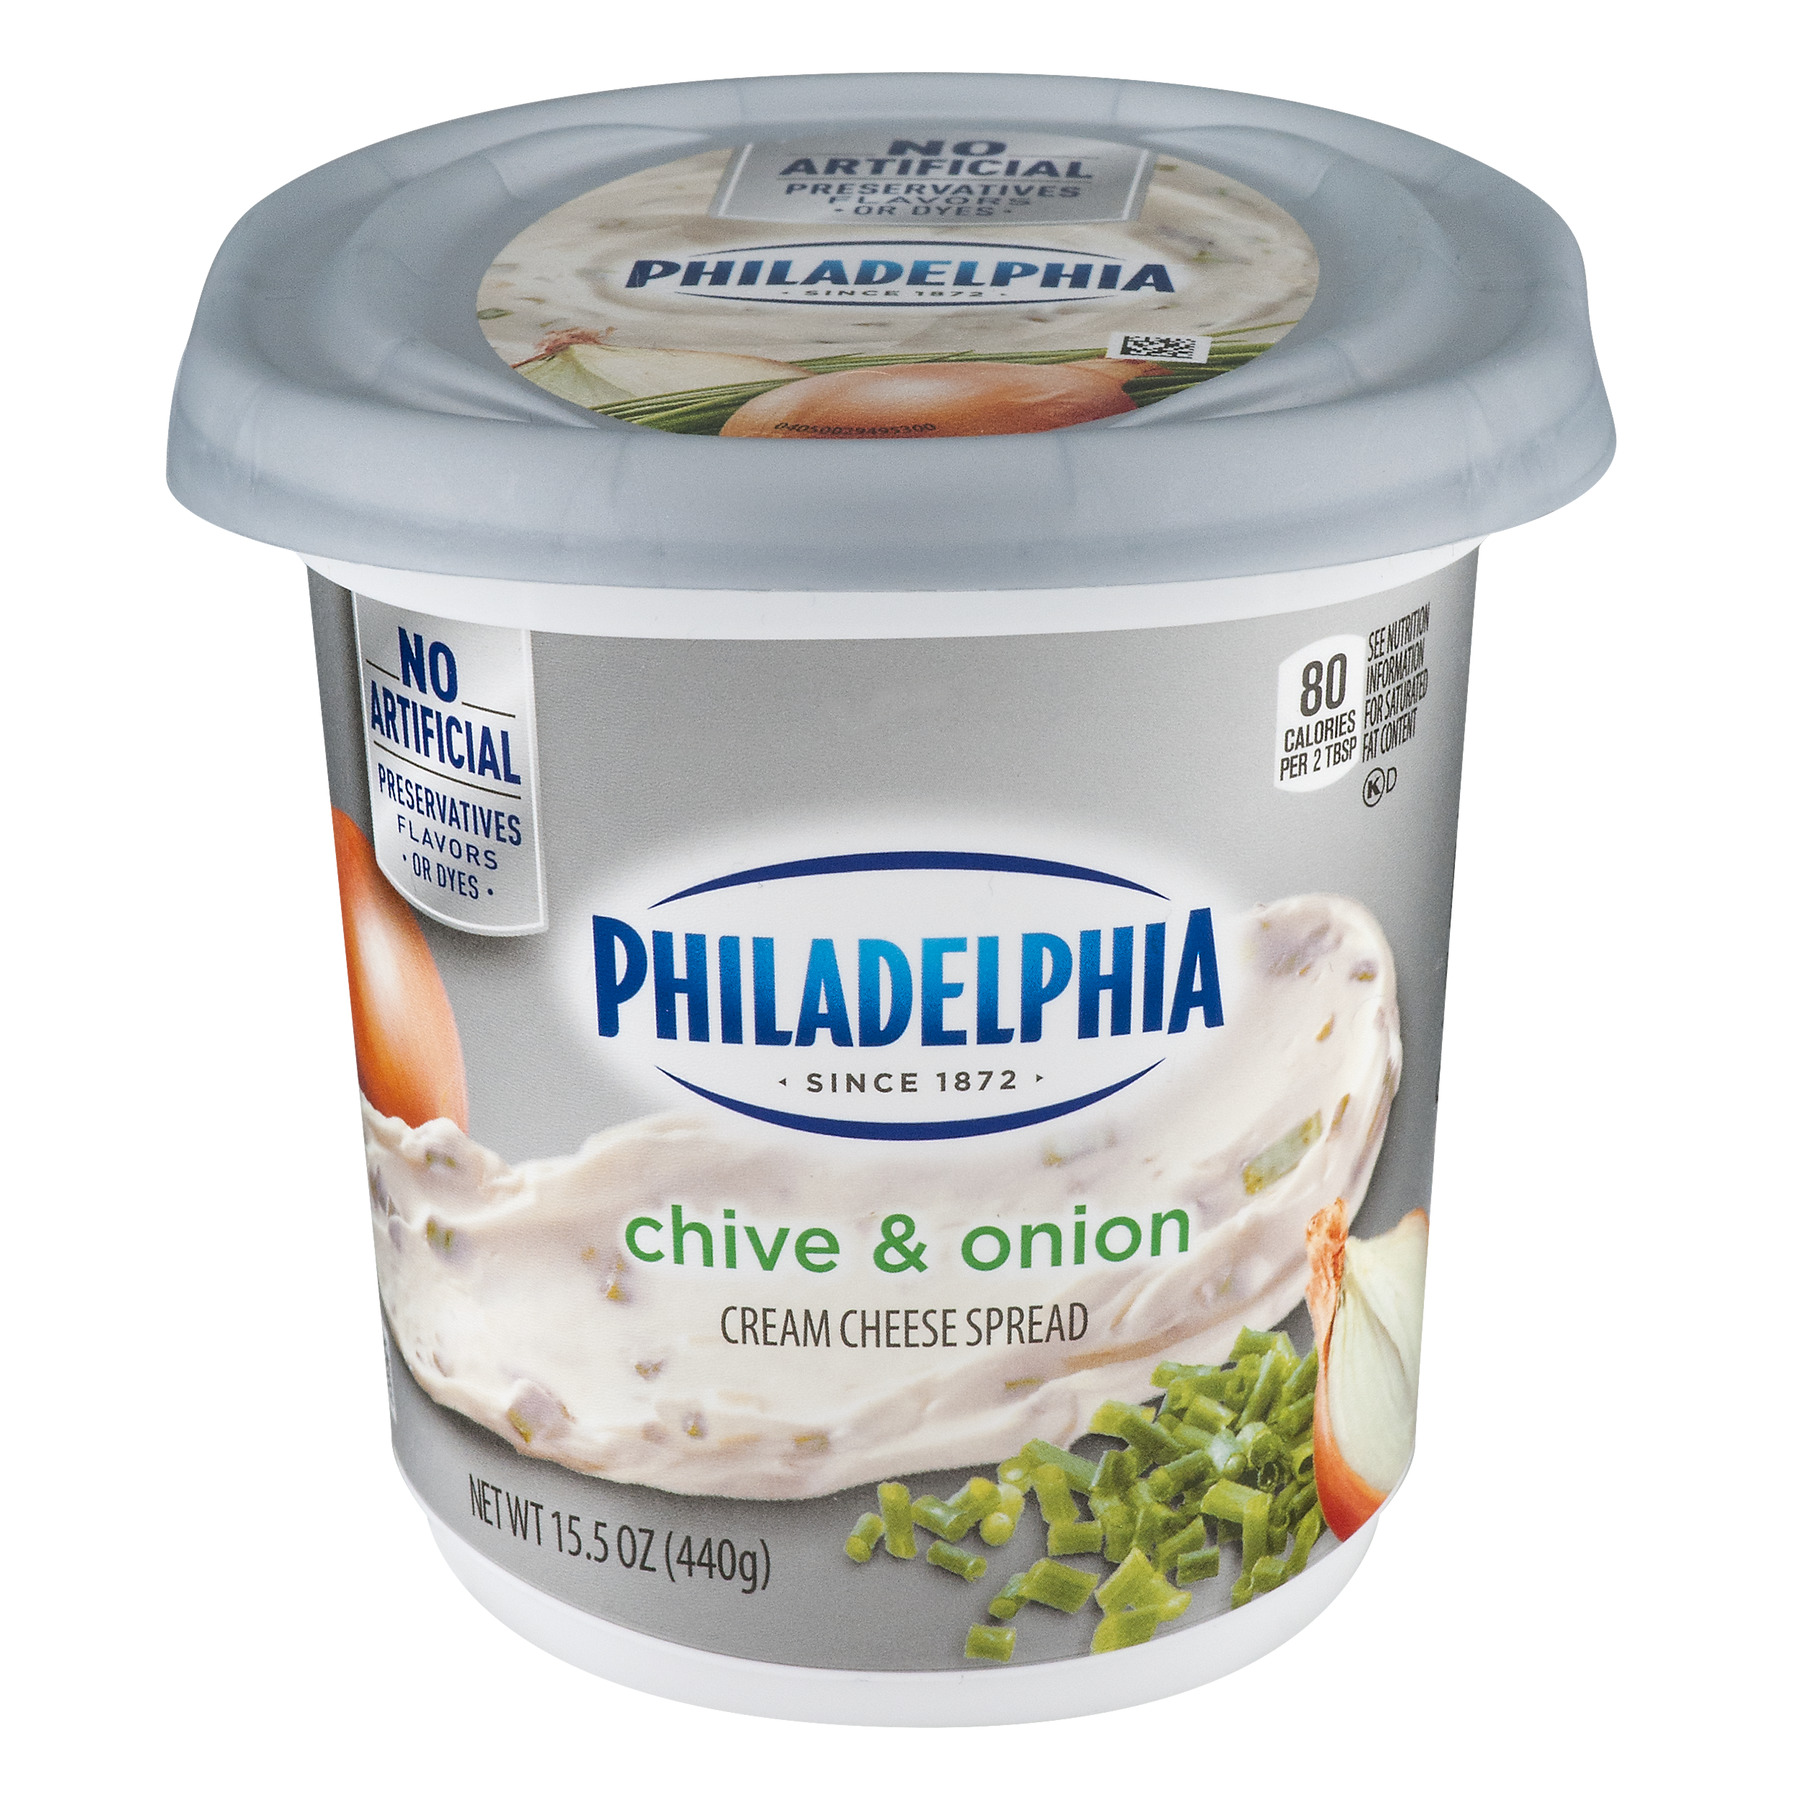 Philadelphia Chive & Onion Cream Cheese Spread, 15.5 oz